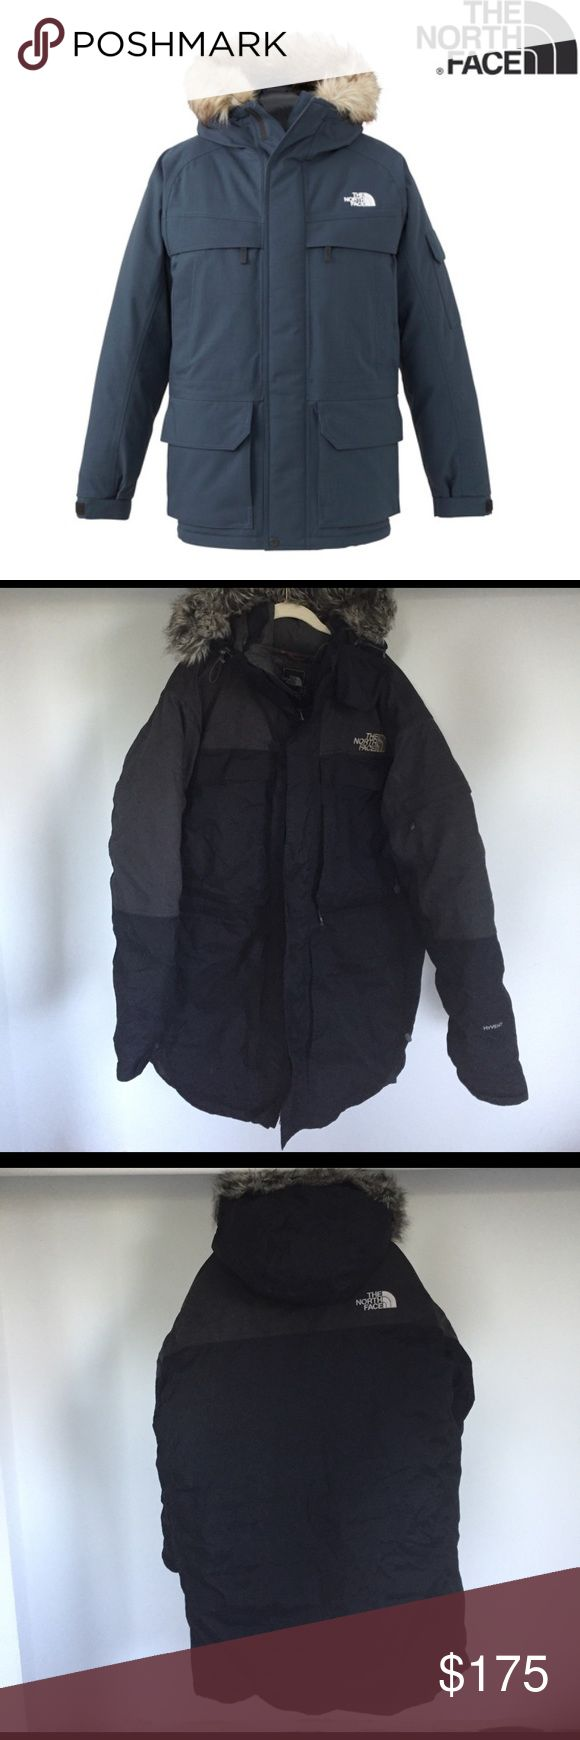 the north face mcmurdo coat Super warm north face winter coat. Authentic , lightly used condition. Very comfy and made for winters The North Face Jackets & Coats